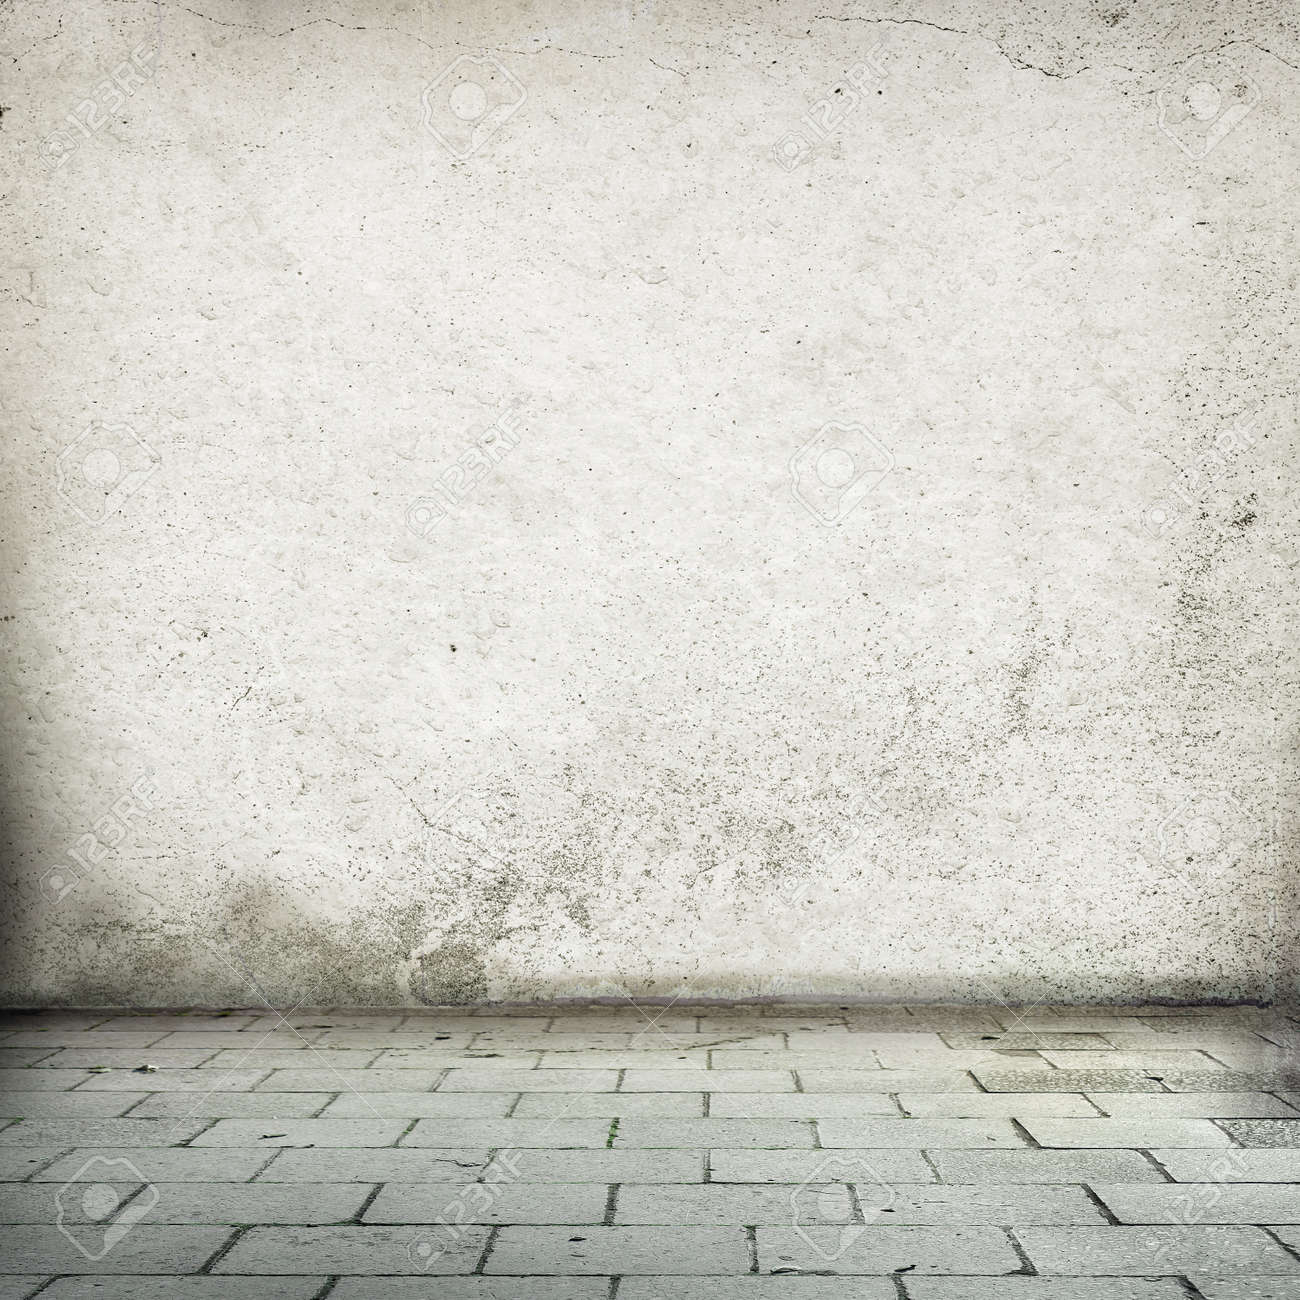 Abandoned Interior Old Street Wall Texture Background And Sidewalk Stock Photo